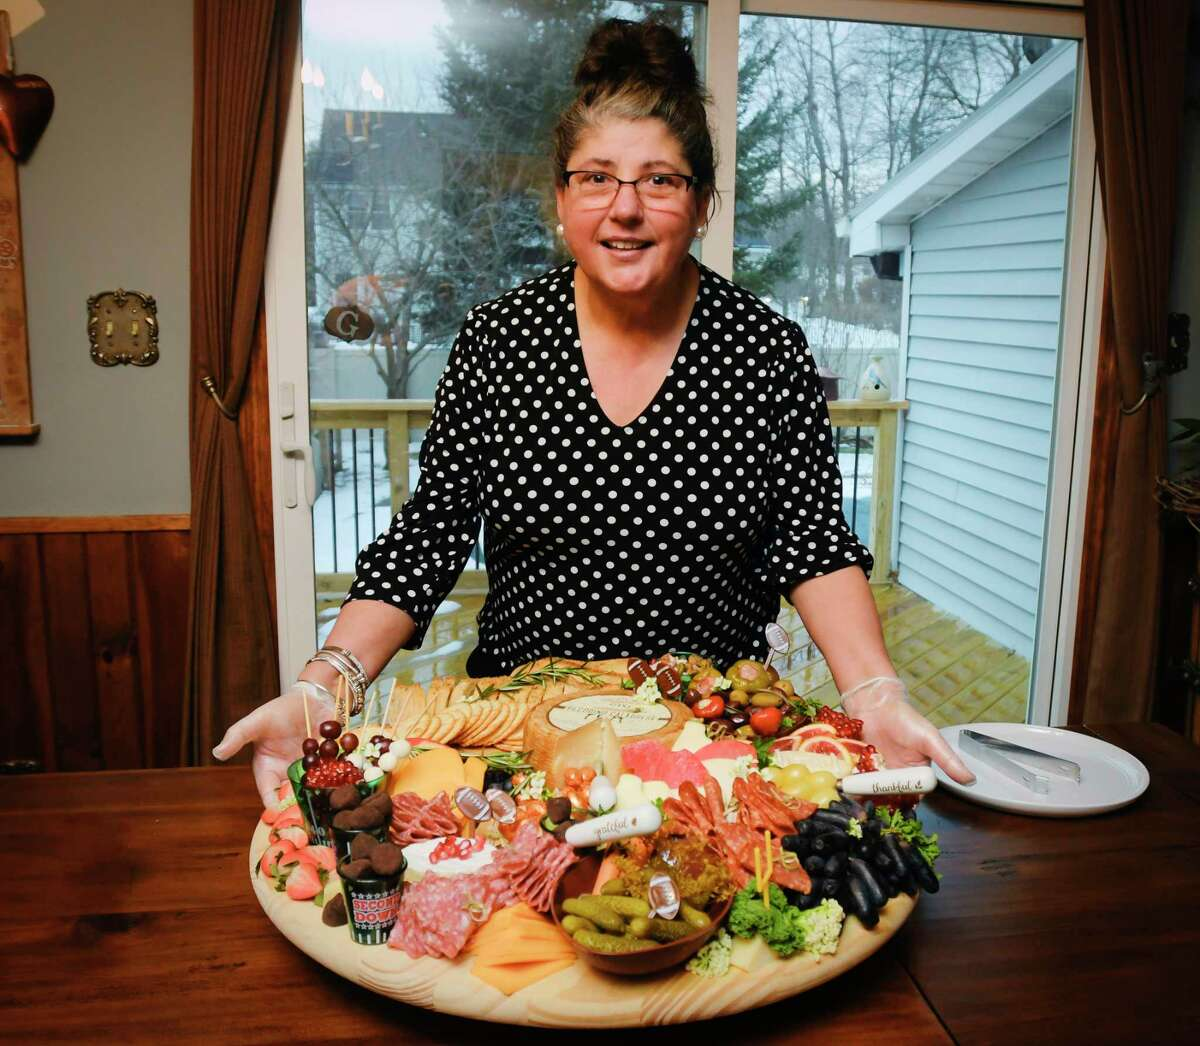 Maria Greco, owner of 518grazing, with The Man Cave grazing board she creates, on Sunday, Jan. 17, 2021, in Niskayuna, N.Y. (Paul Buckowski/Times Union)